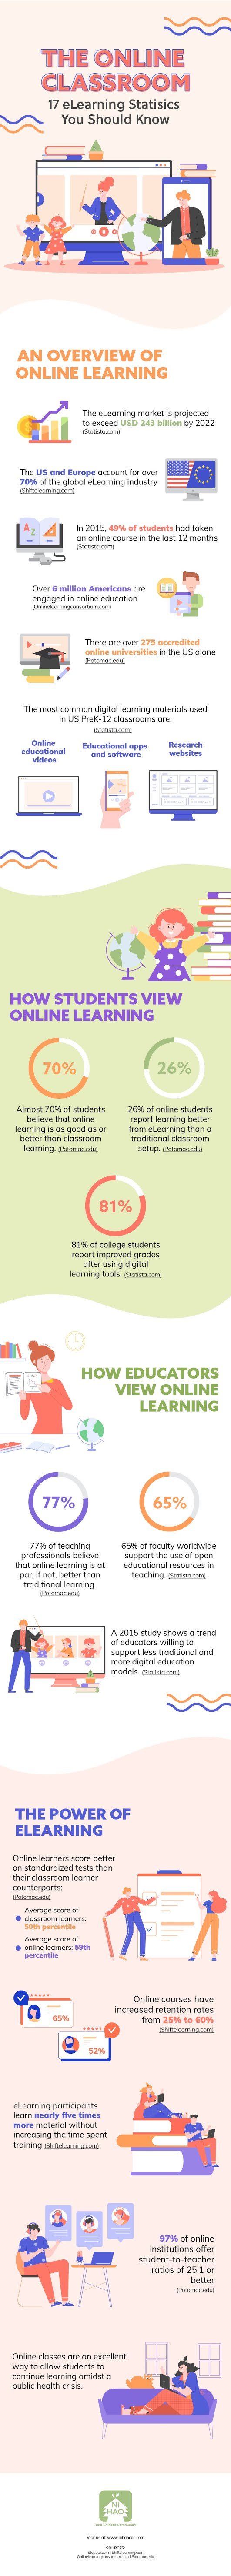 The Online Classroom: 17 eLearning Statistics You Should Know #infographic